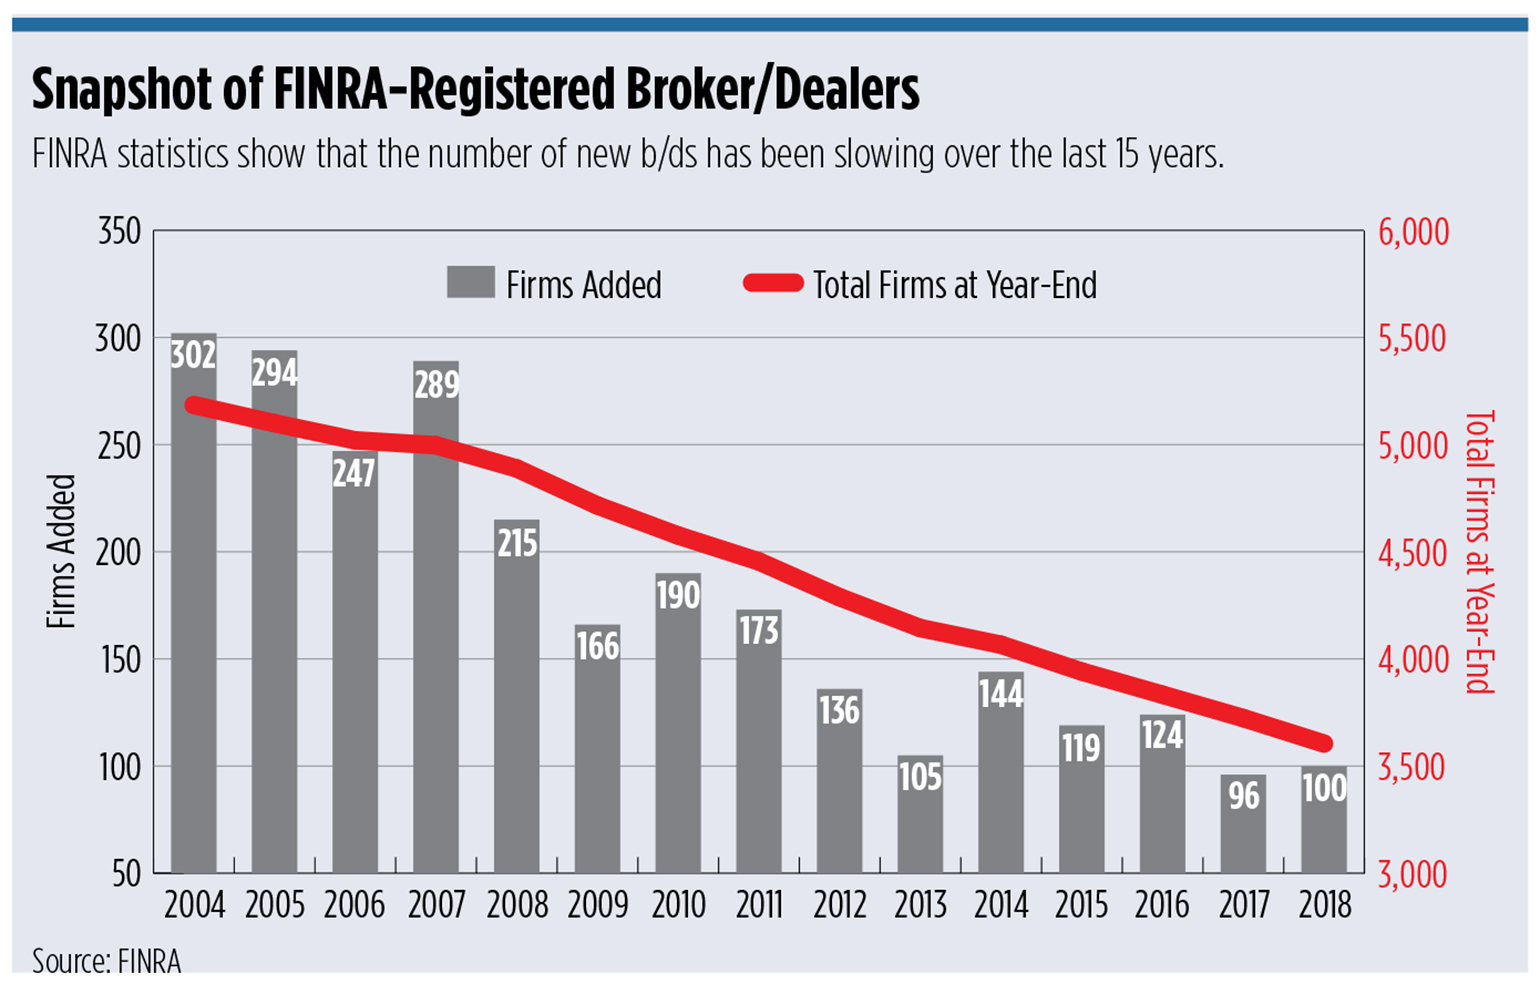 FINRA broker/dealers